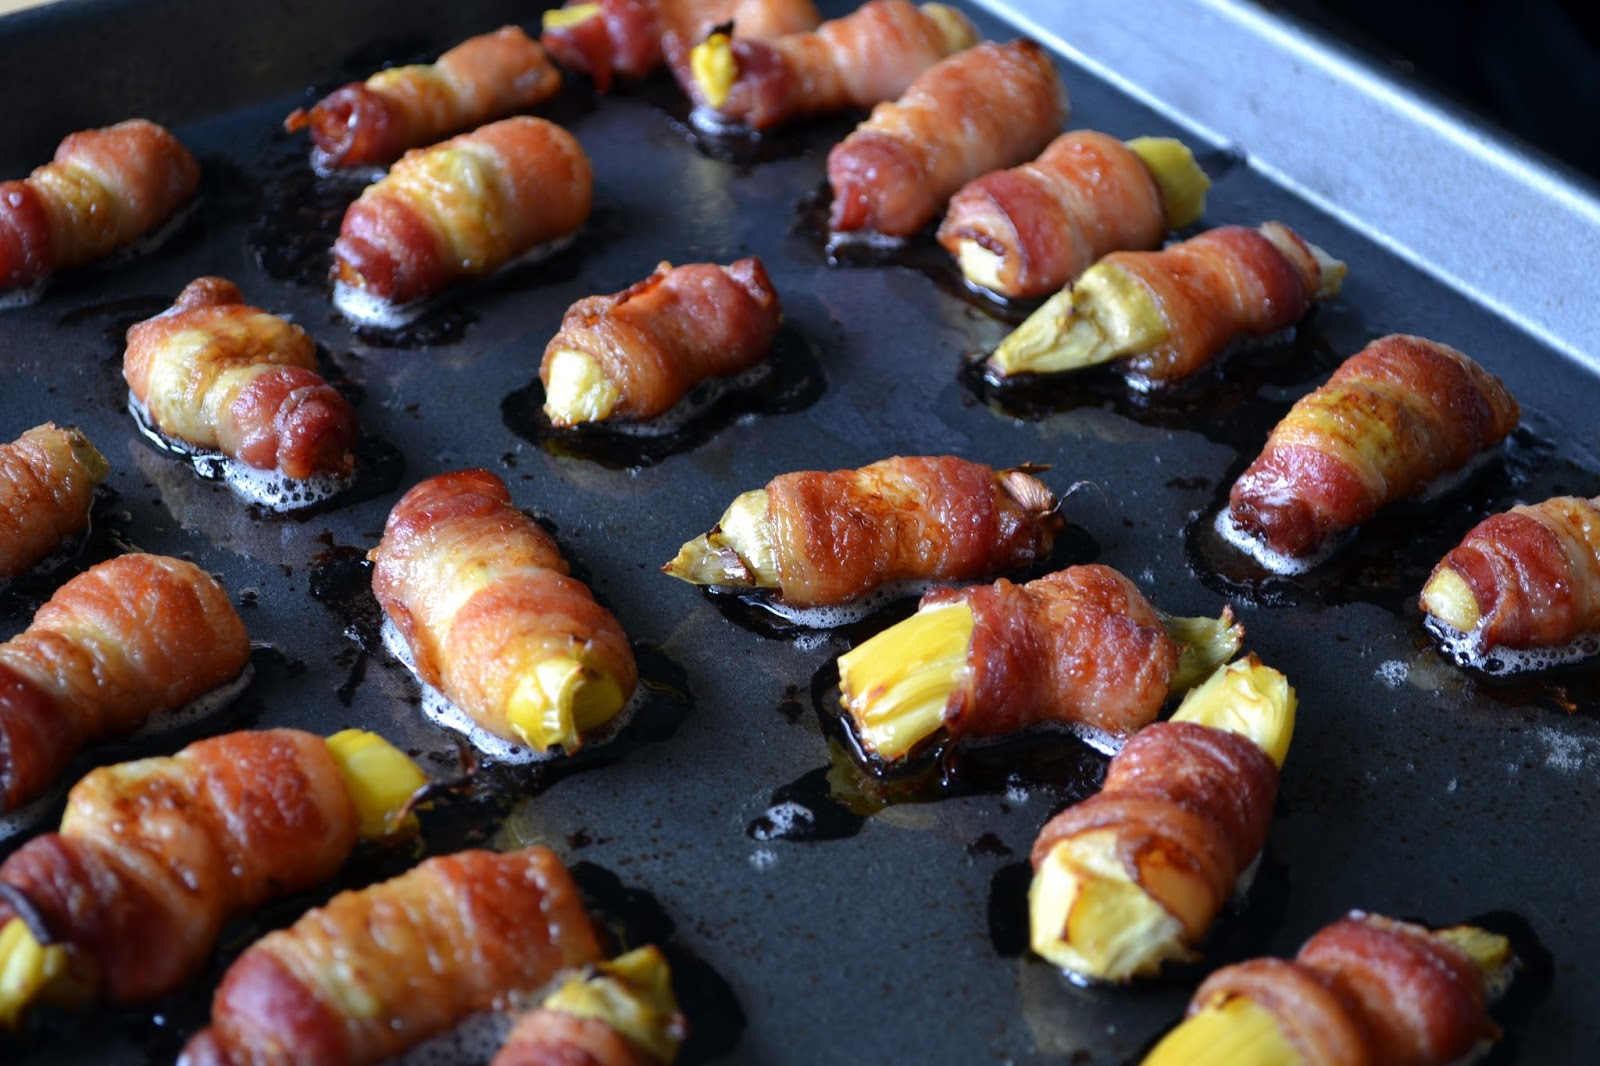 ... Housewives: Bacon Wrapped Artichoke Hearts with Lemon Dijon Aioli